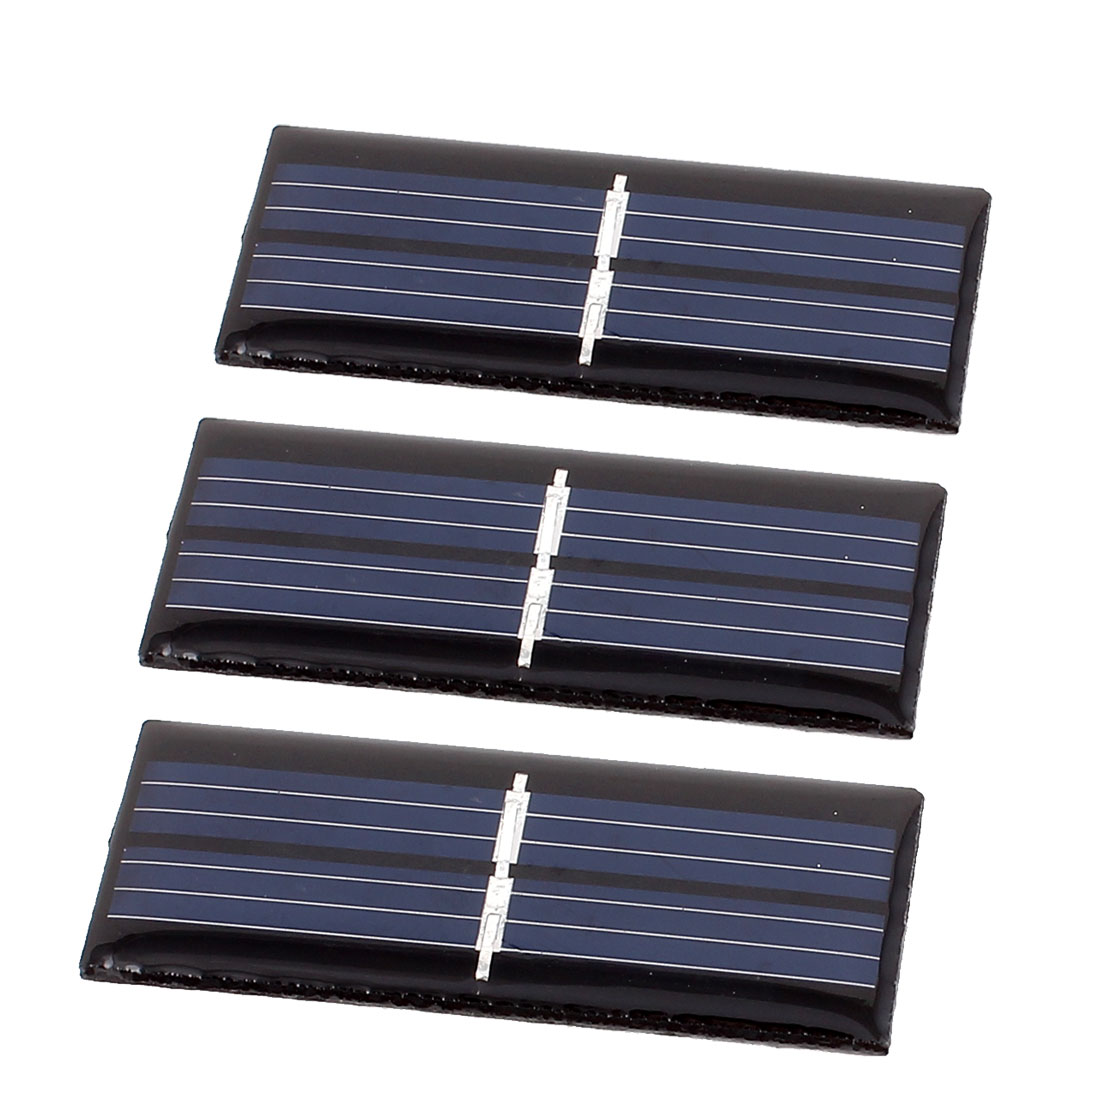 3 Pcs 1V 0.08W DIY Polycrystallinesilicon Solar Panel Power Cell Battery Charger 55mm x 22mm